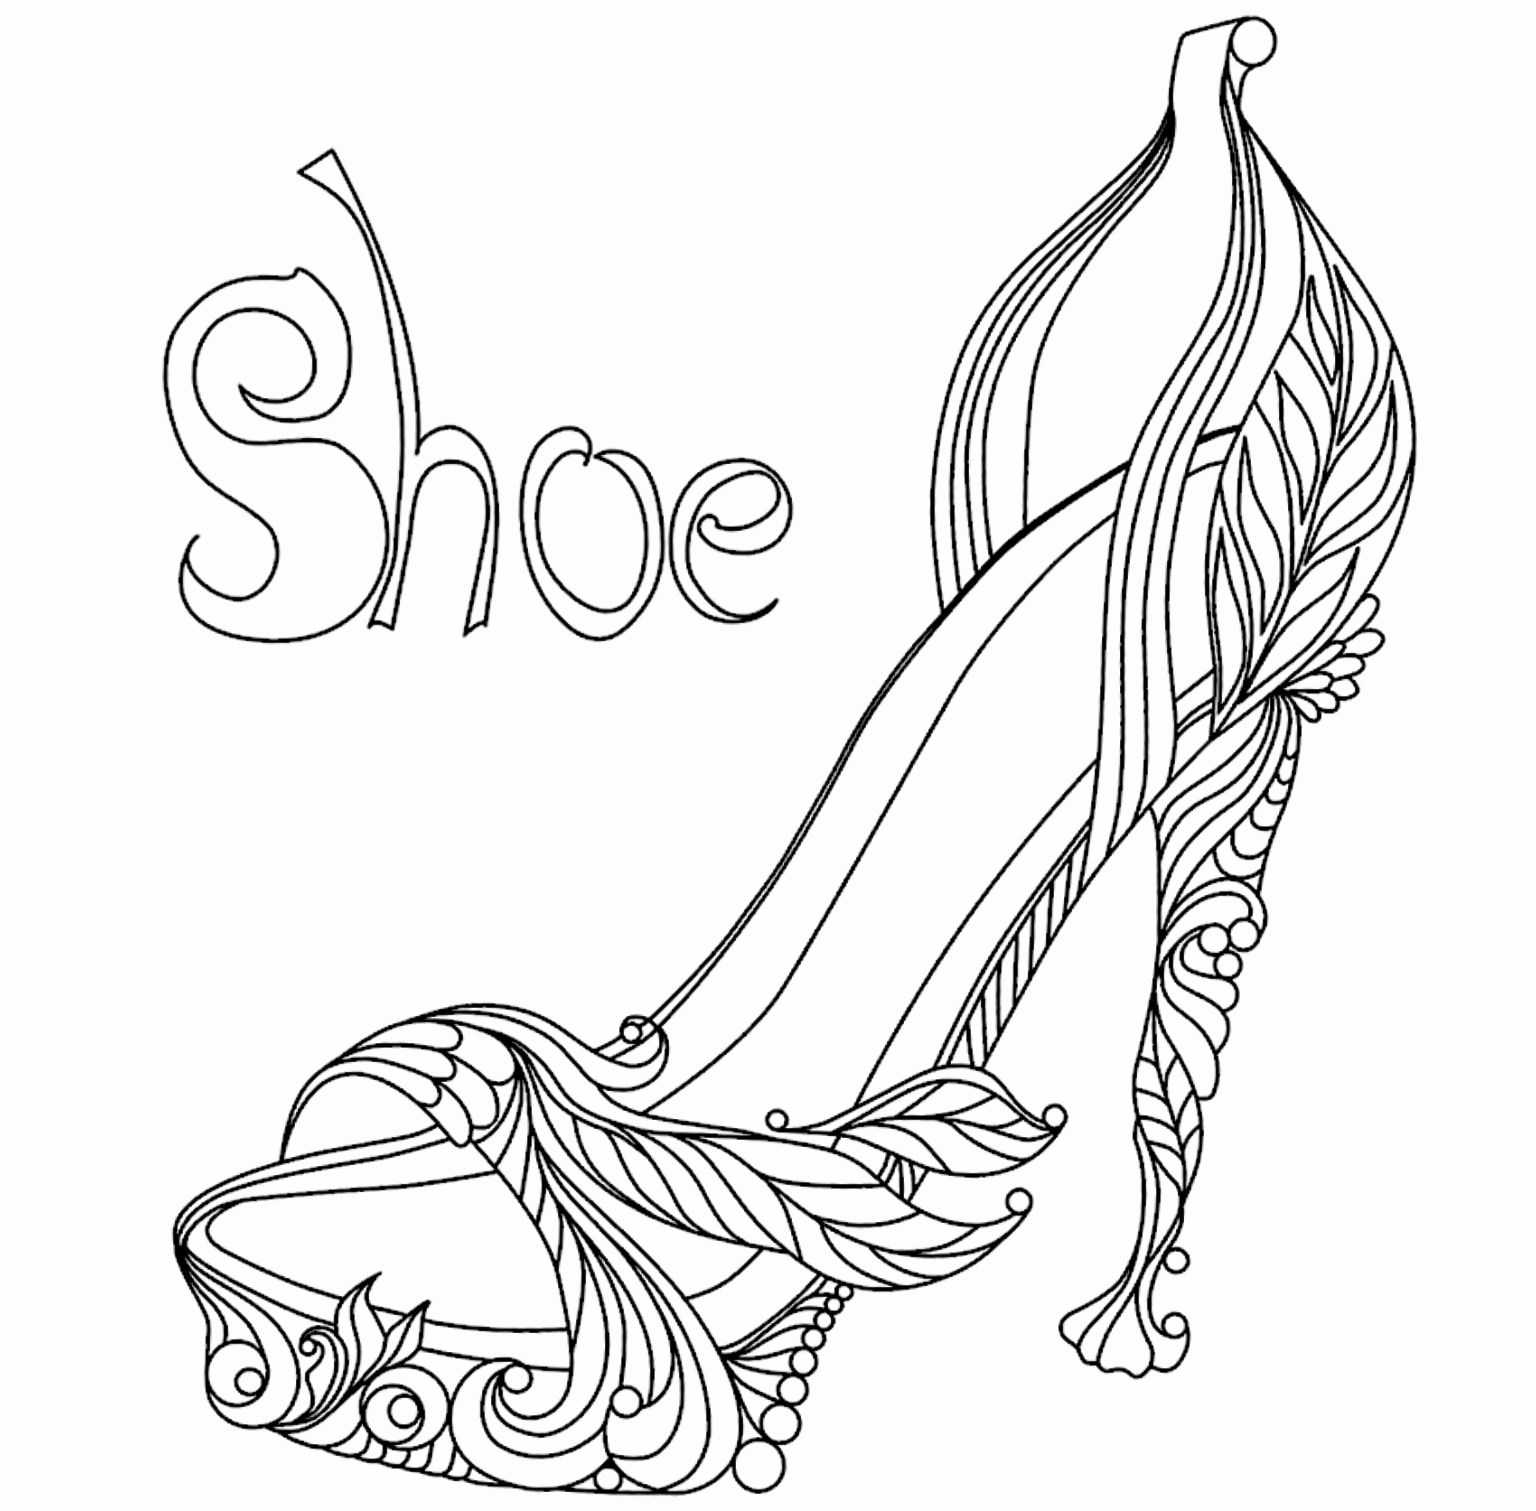 High Heel Drawing Template At Paintingvalley | Explore Within High Heel Shoe Template For Card